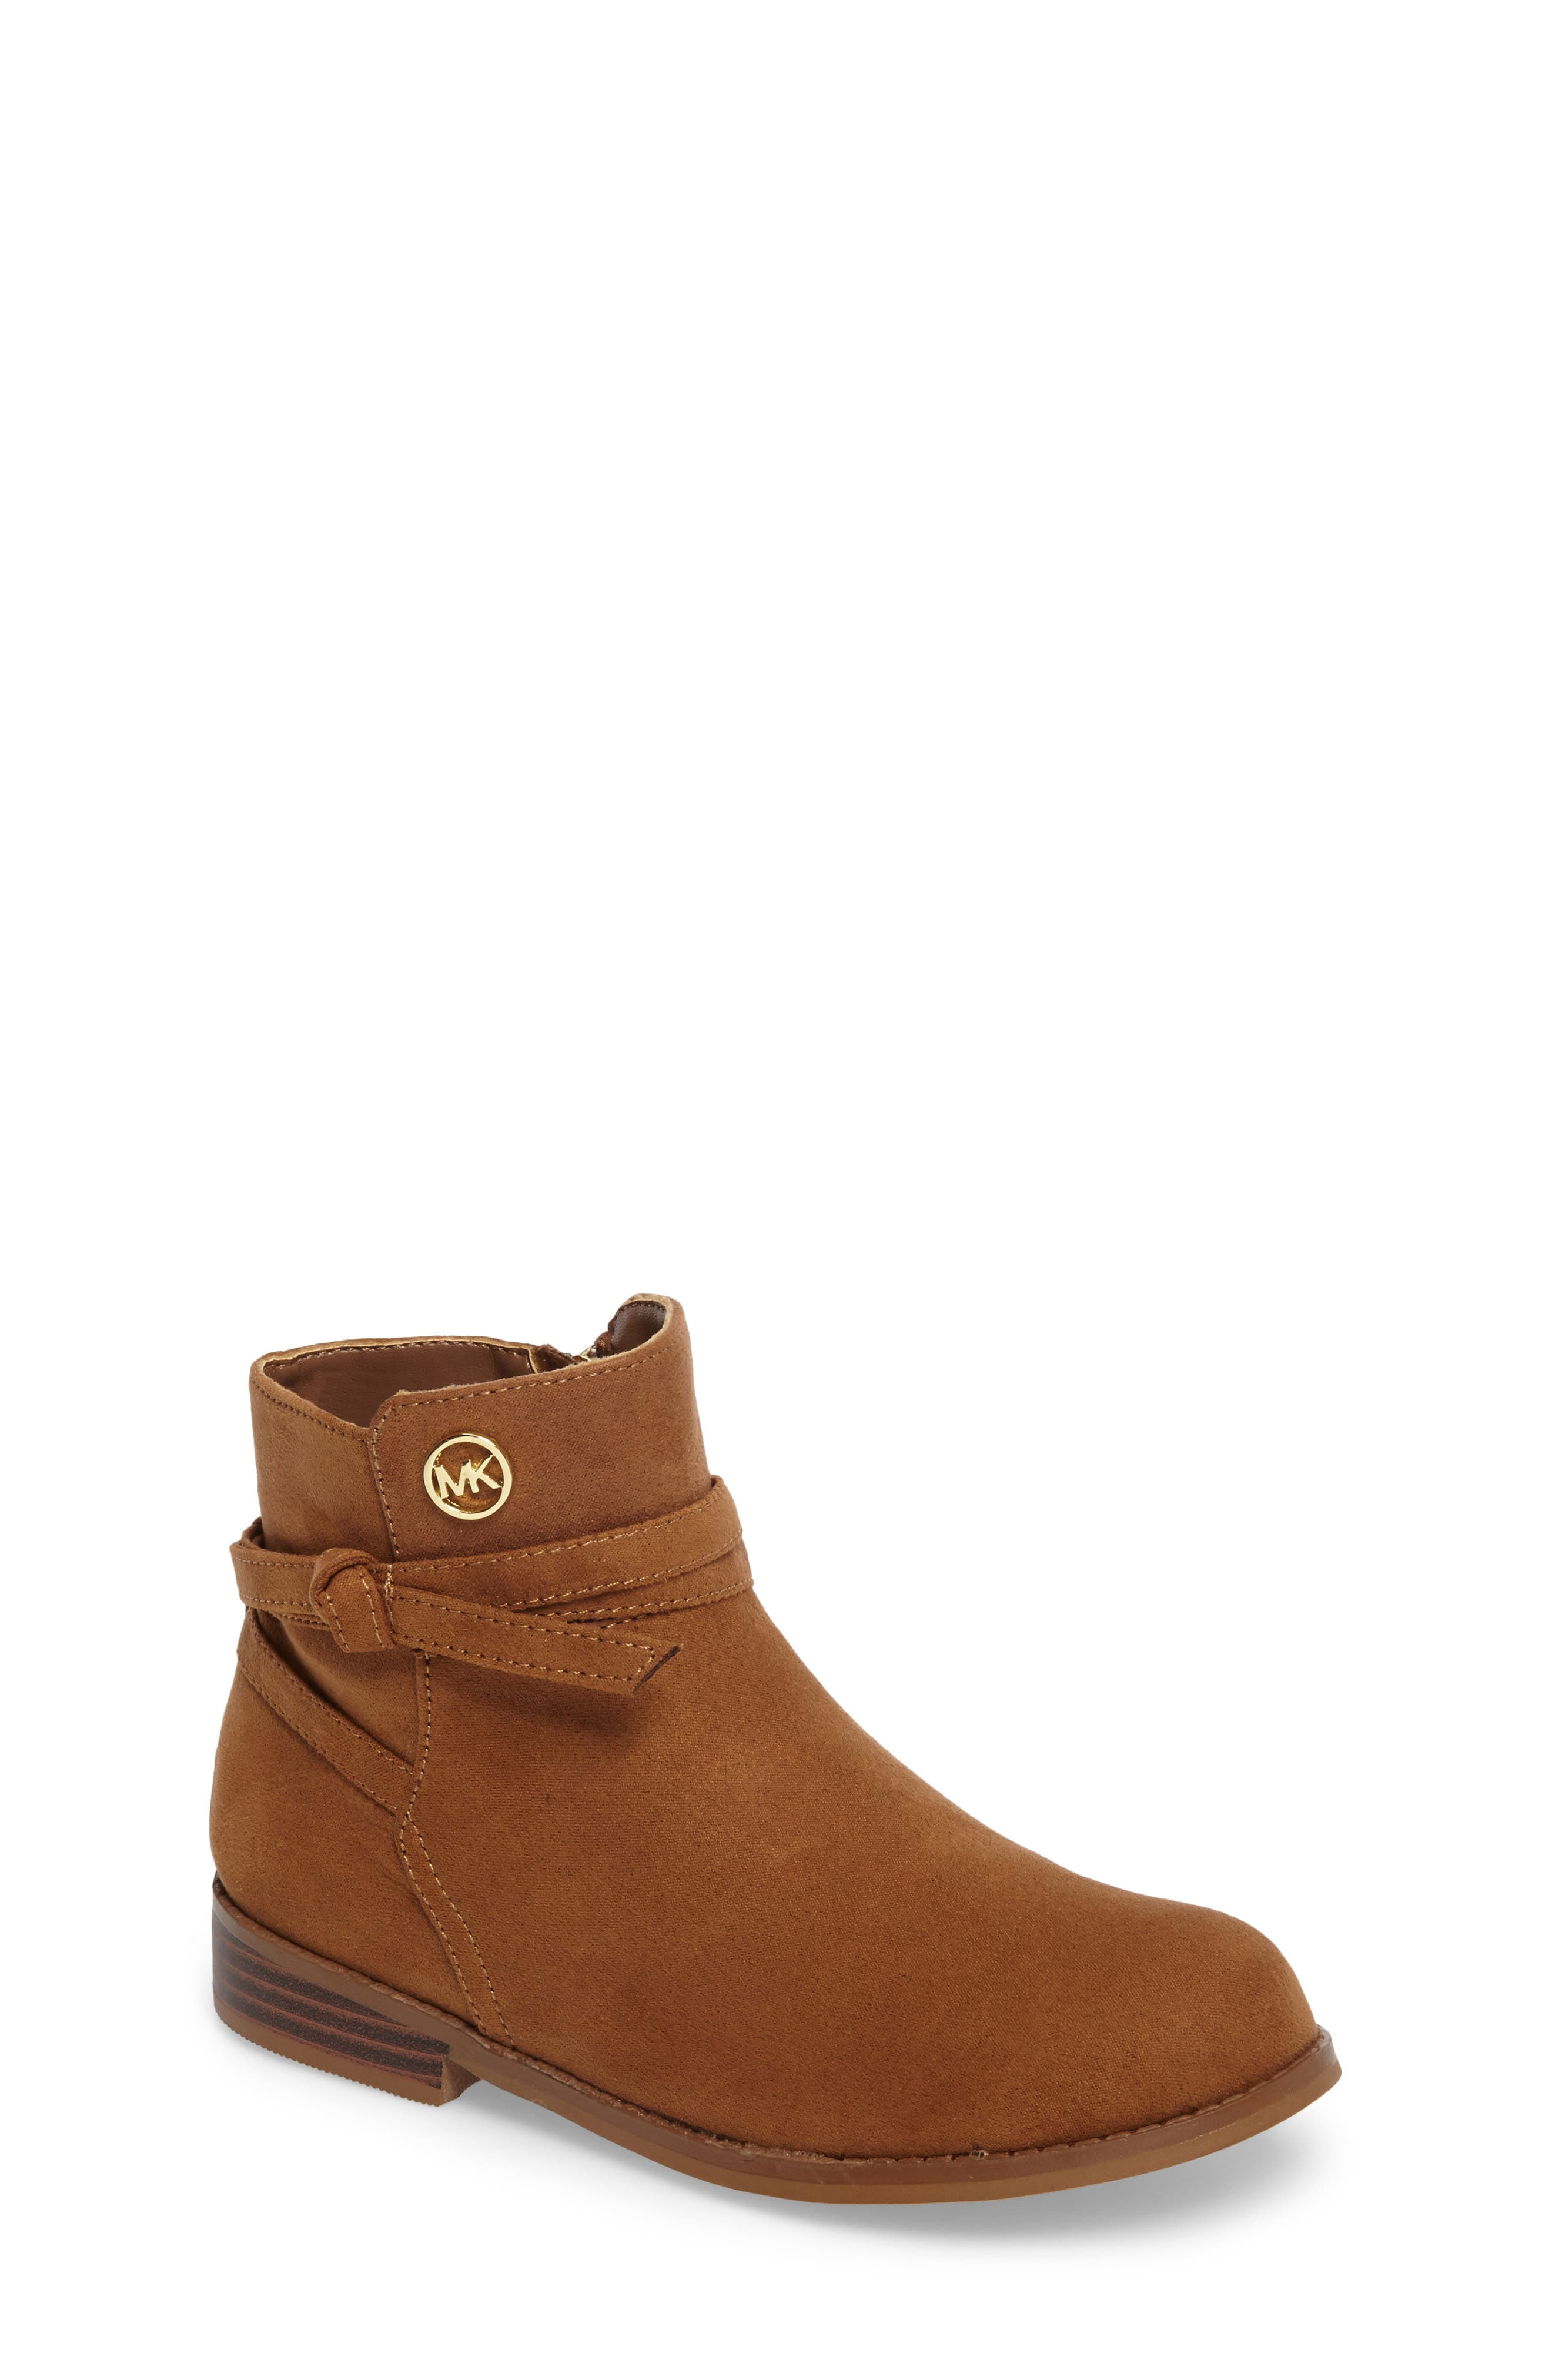 Alternate Image 1 Selected - MICHAEL Michael Kors Emma Carmen Knotted Bootie (Toddler, Little Kid & Big Kid)